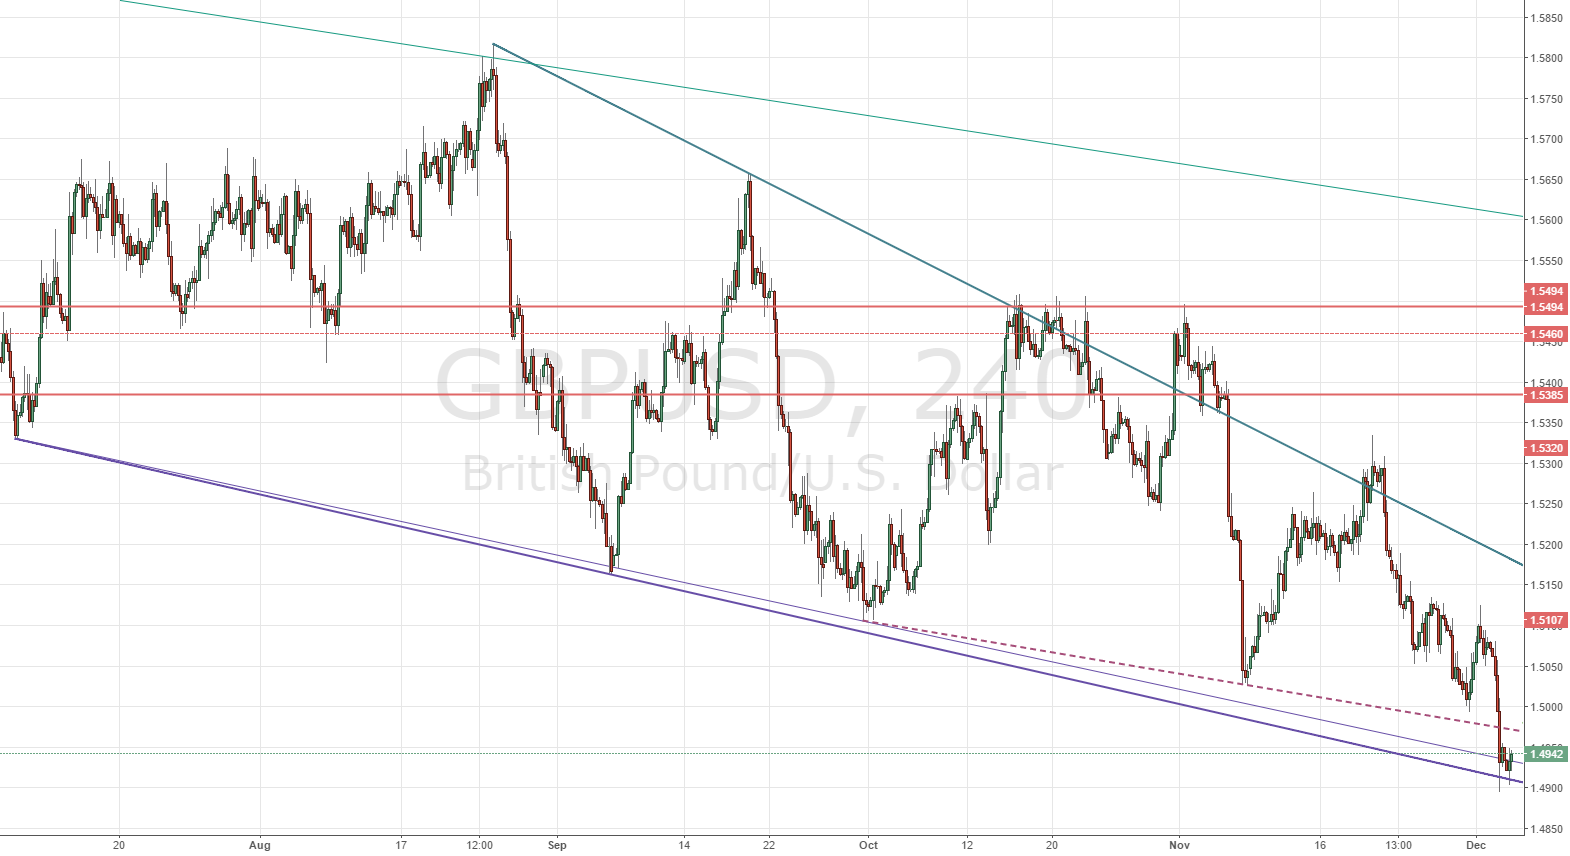 GBPUSD has tested weekly support 1.4910